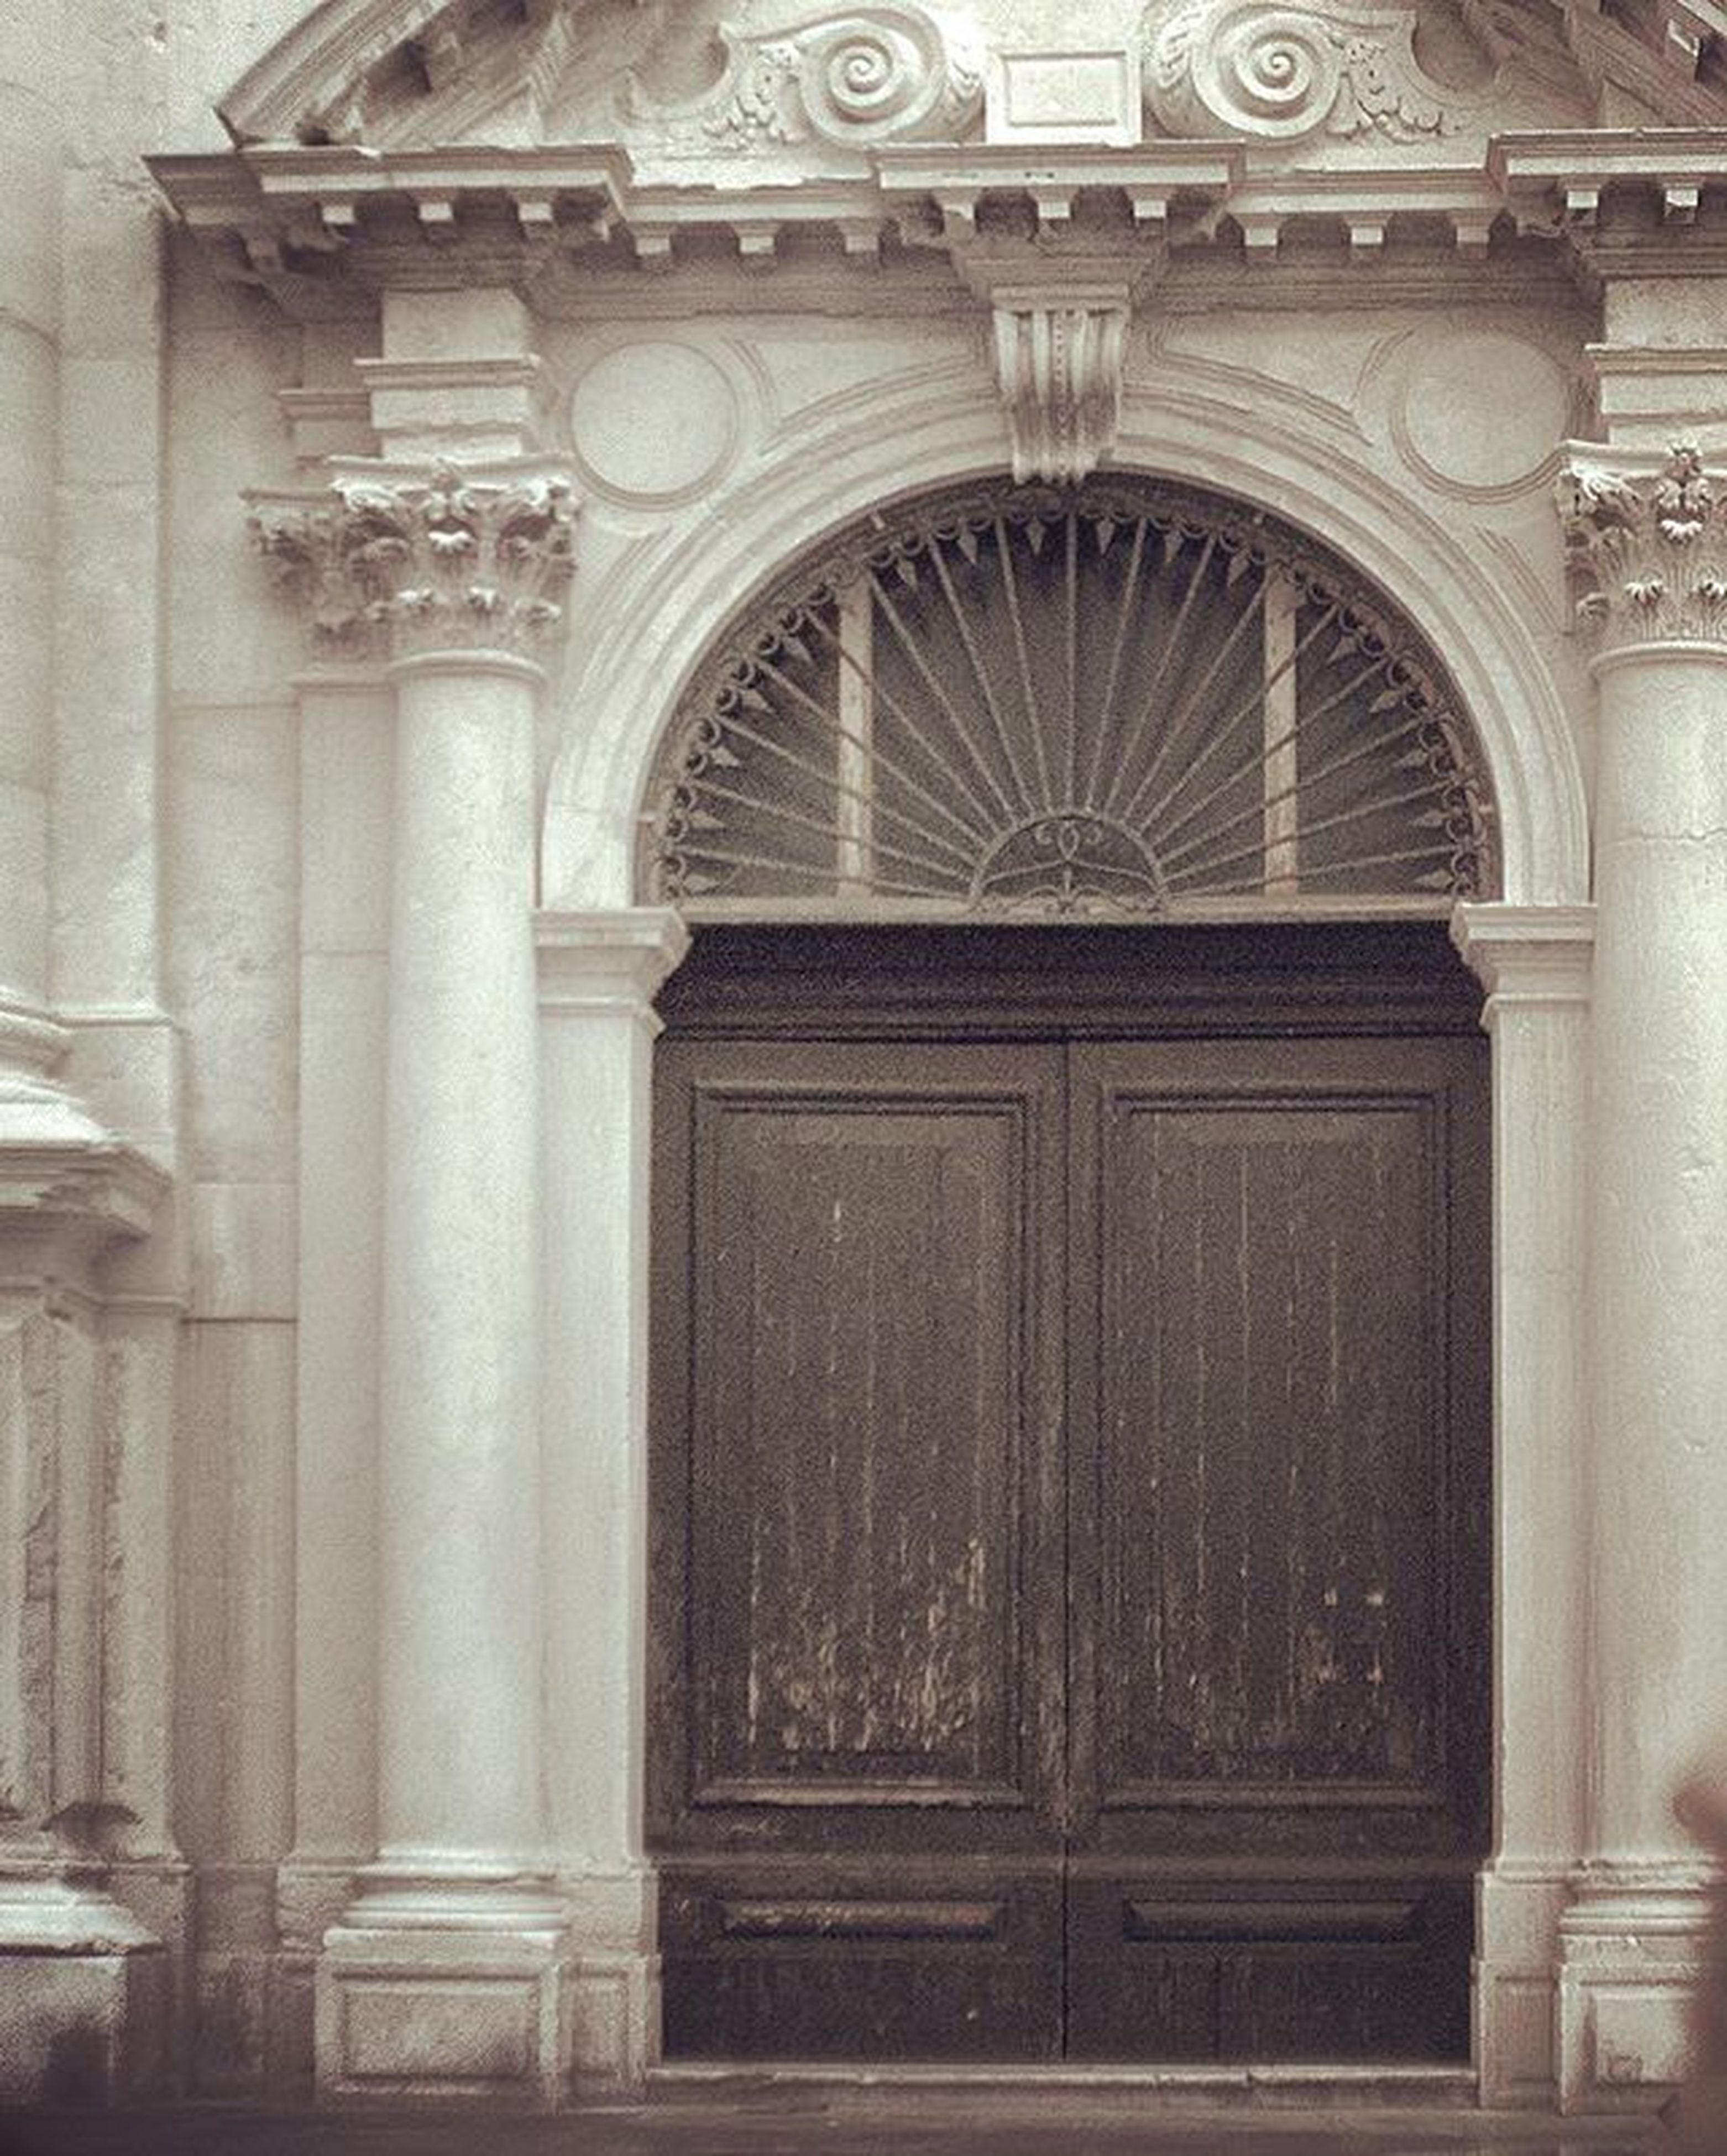 architecture, door, built structure, building exterior, entrance, arch, closed, old, window, facade, history, ornate, doorway, wood - material, architectural column, day, gate, art and craft, safety, no people